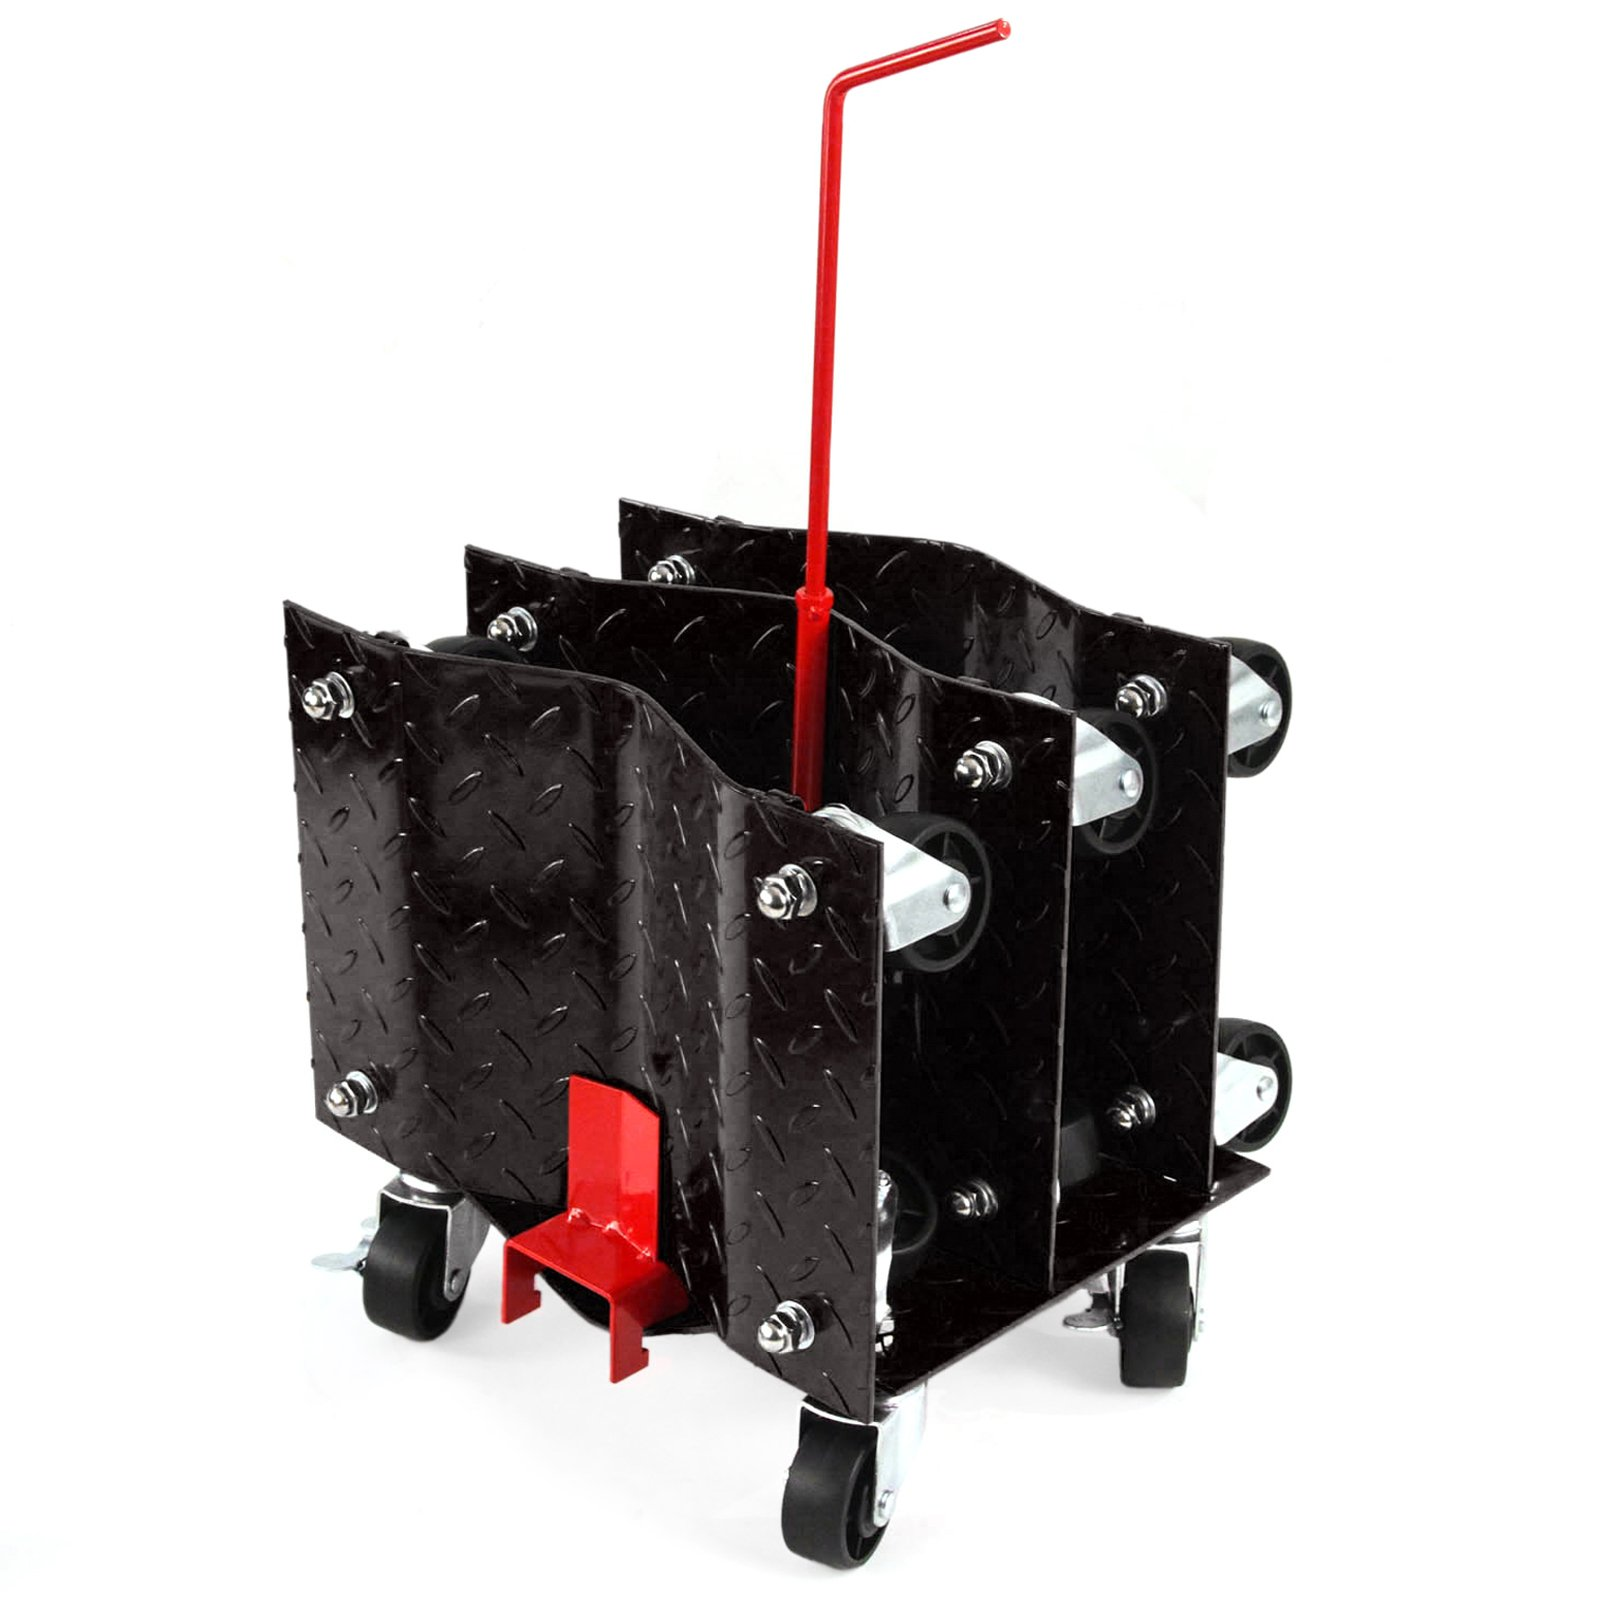 4 - Black with Storage Rack 12 Inches Tire Premium Skates Wheel Car Dolly Ball Bearings Makes Moving a Car Easy by Red Hound Auto